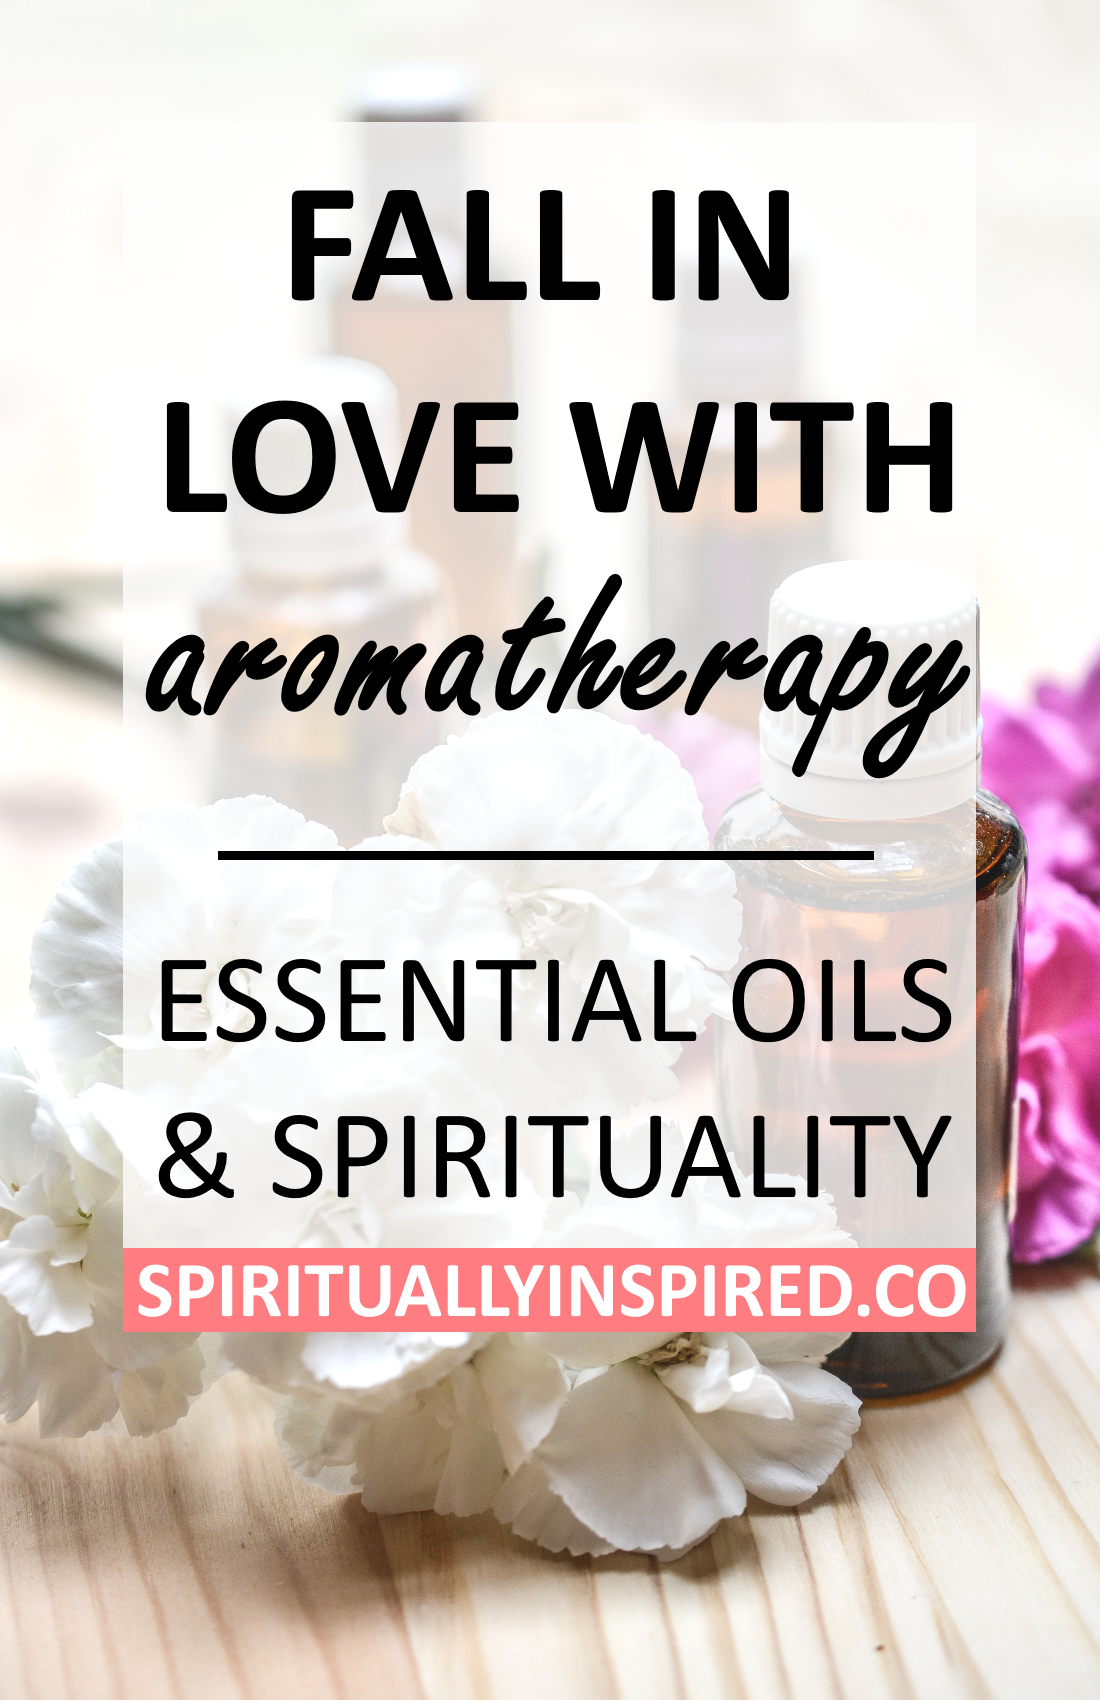 Fall in Love with Aromatherapy - Spiritually Inspired